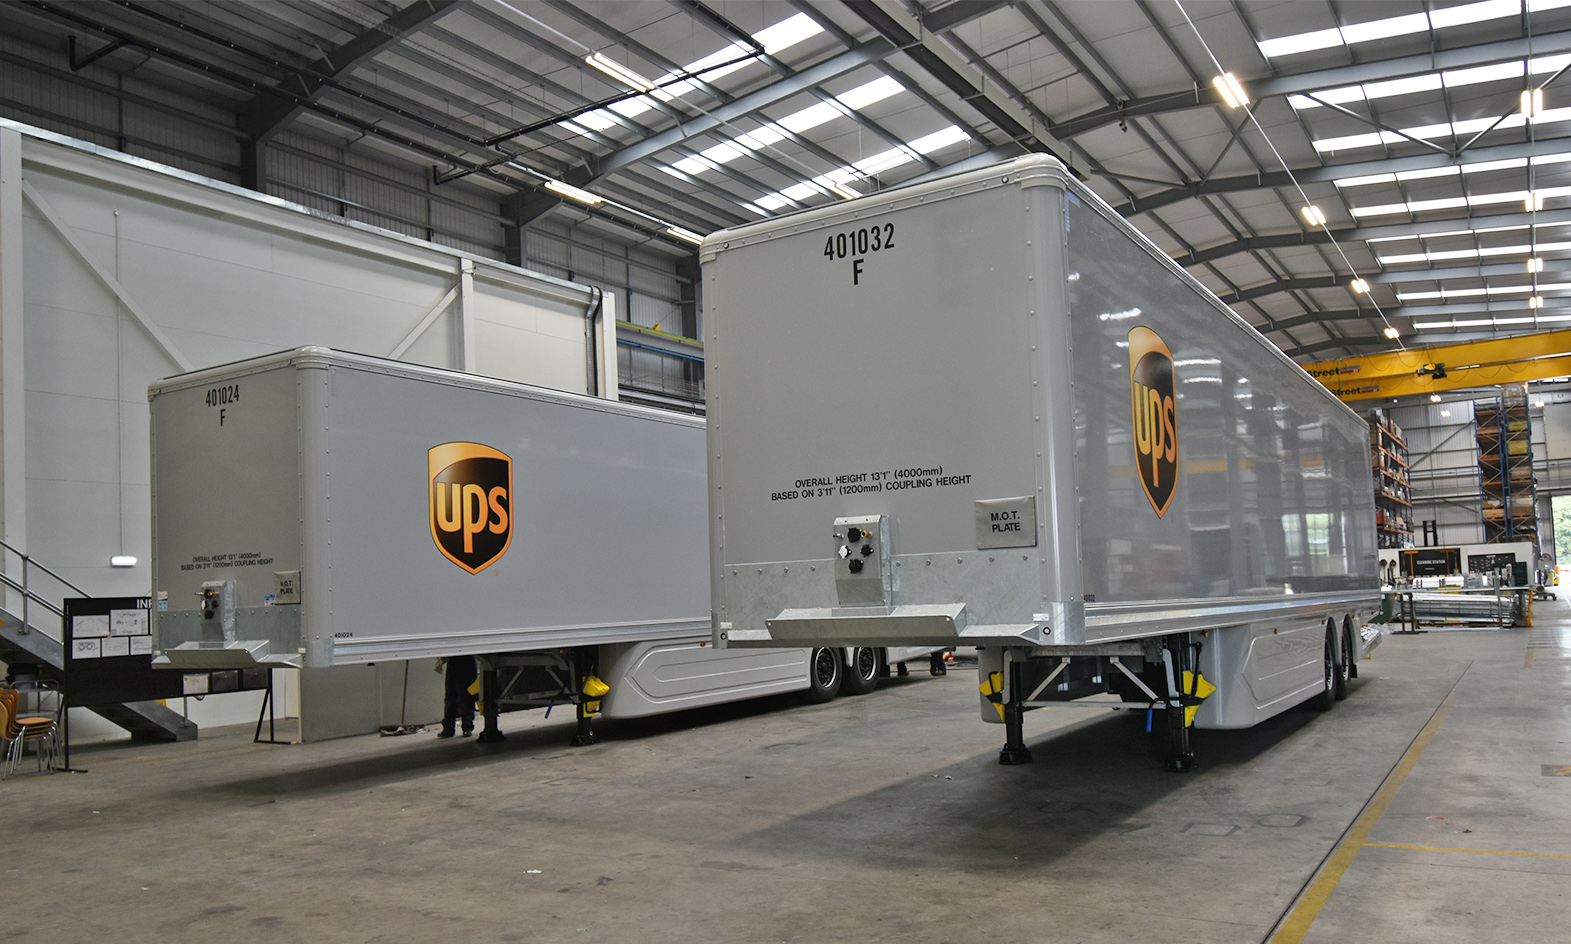 Our World In Profile Tiger Trailers factory production UPS